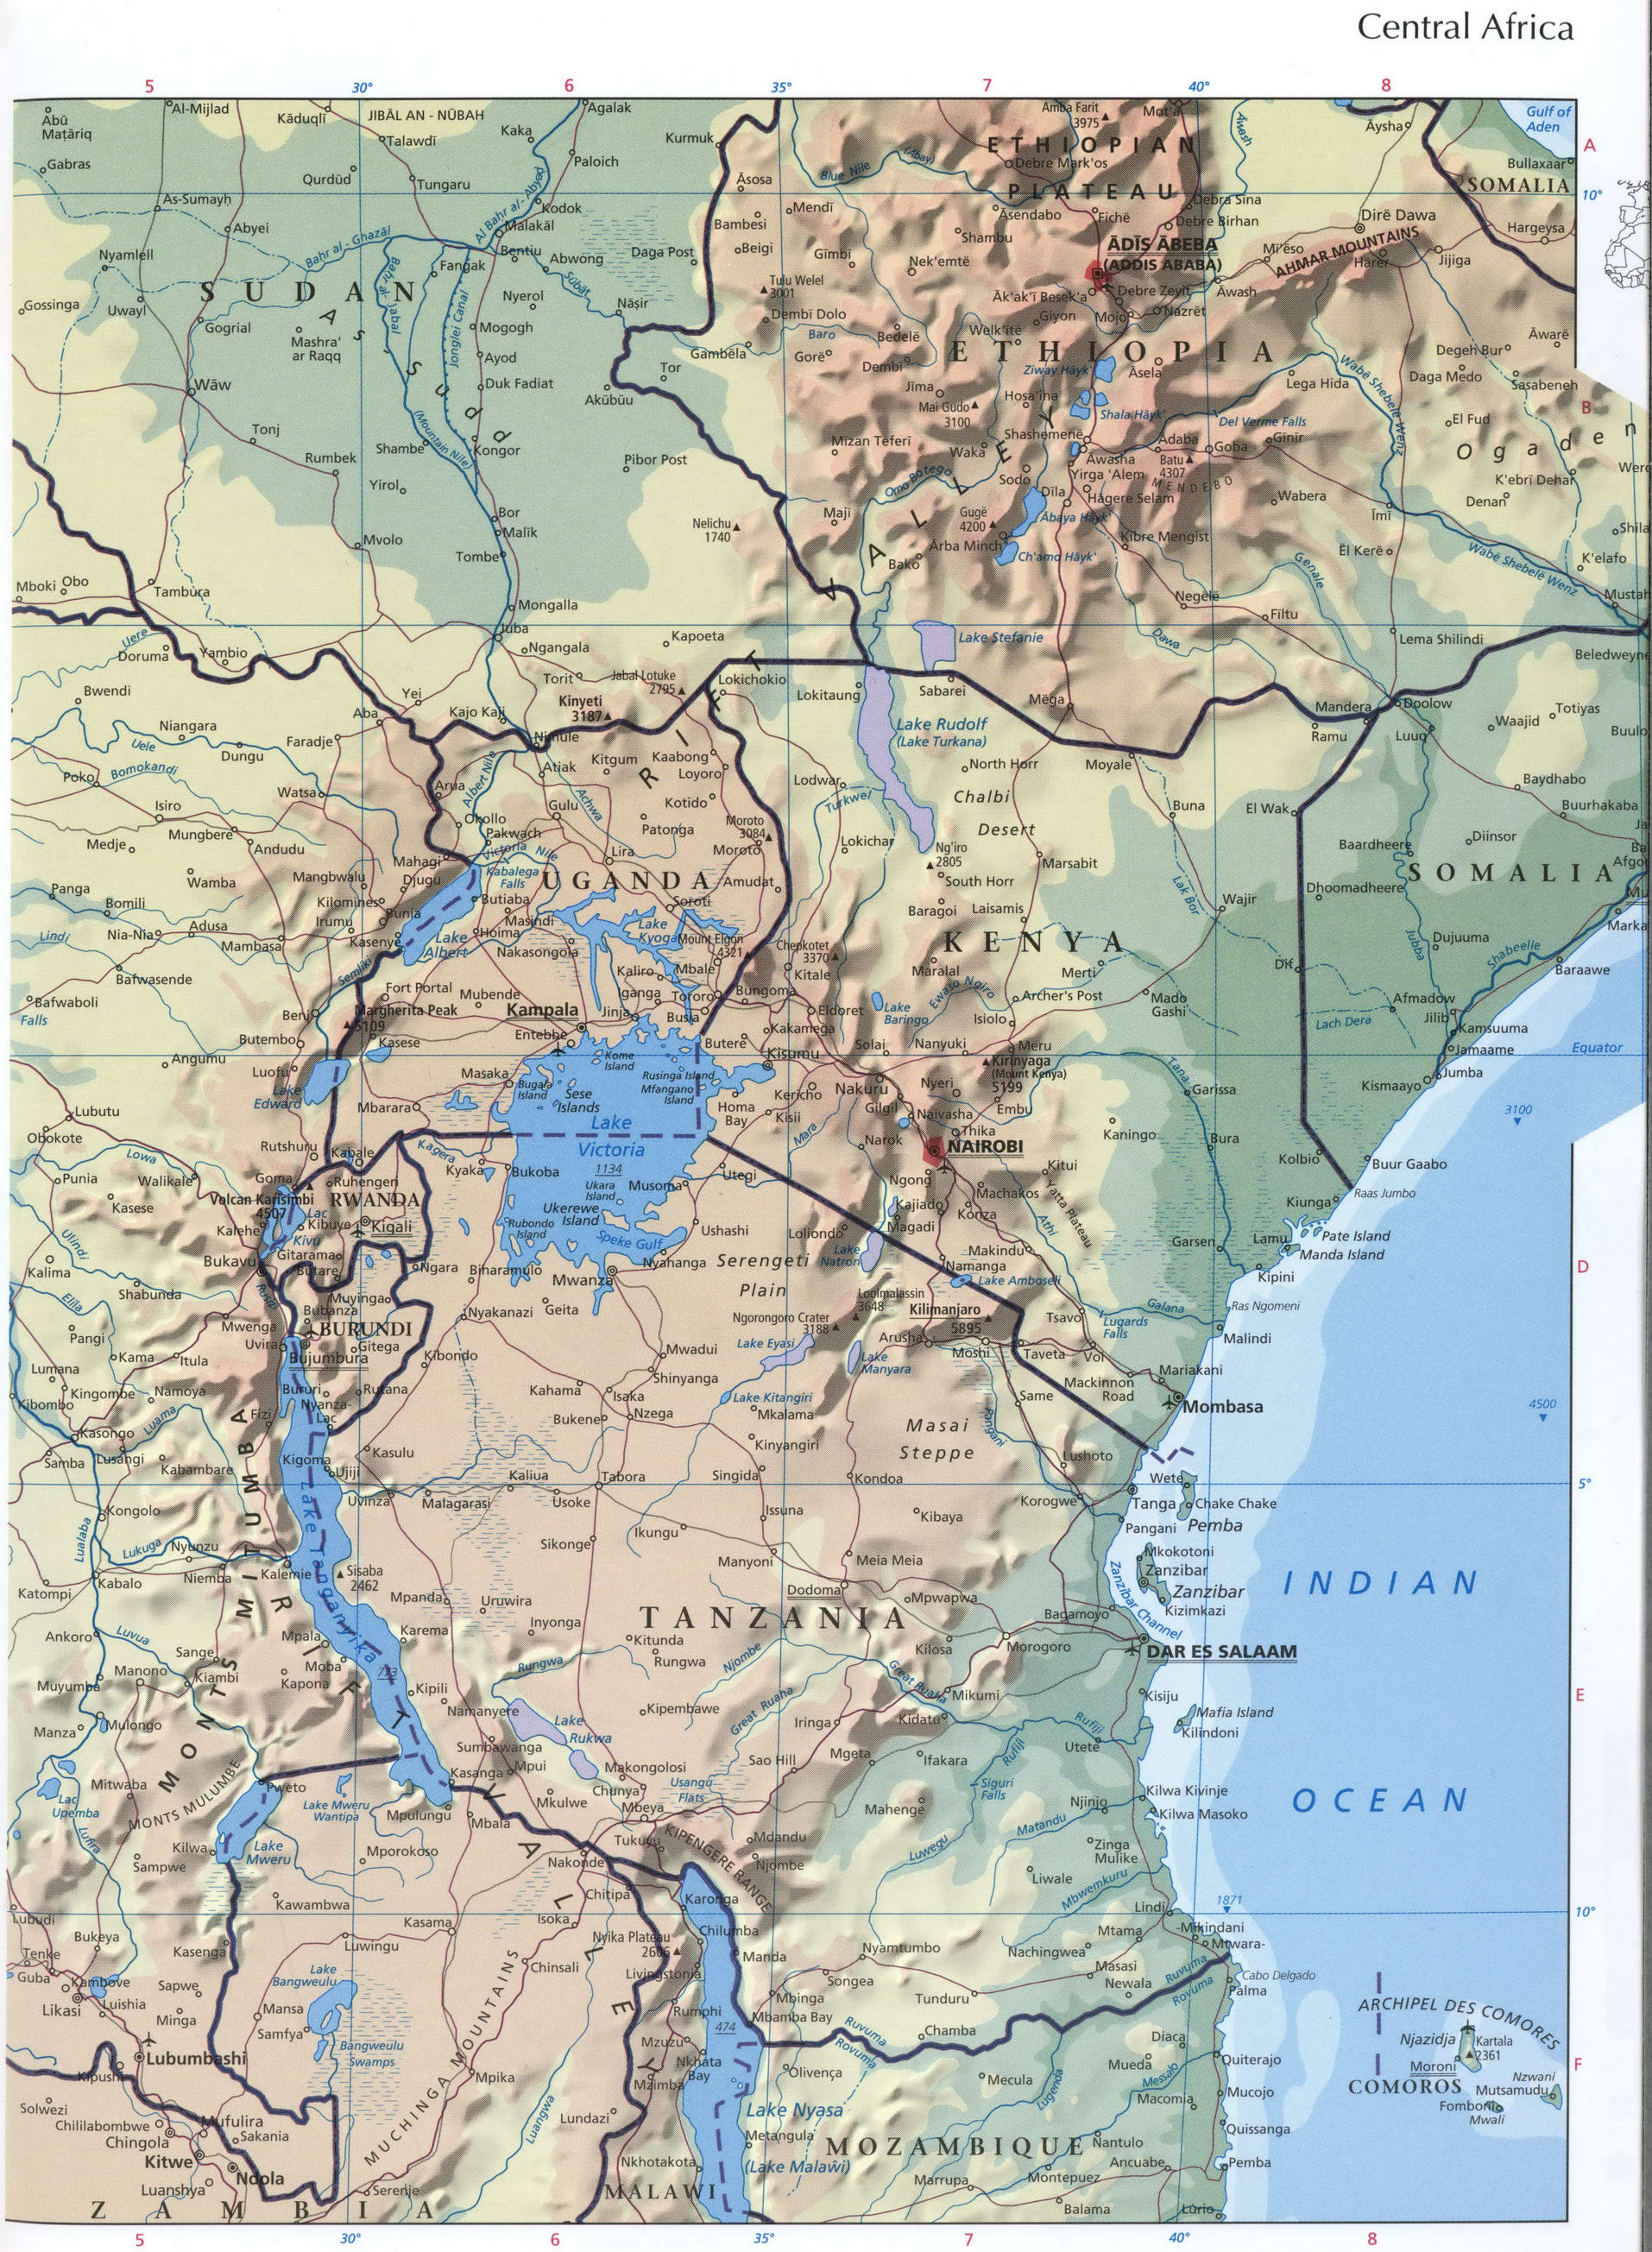 Central Africa map - east part